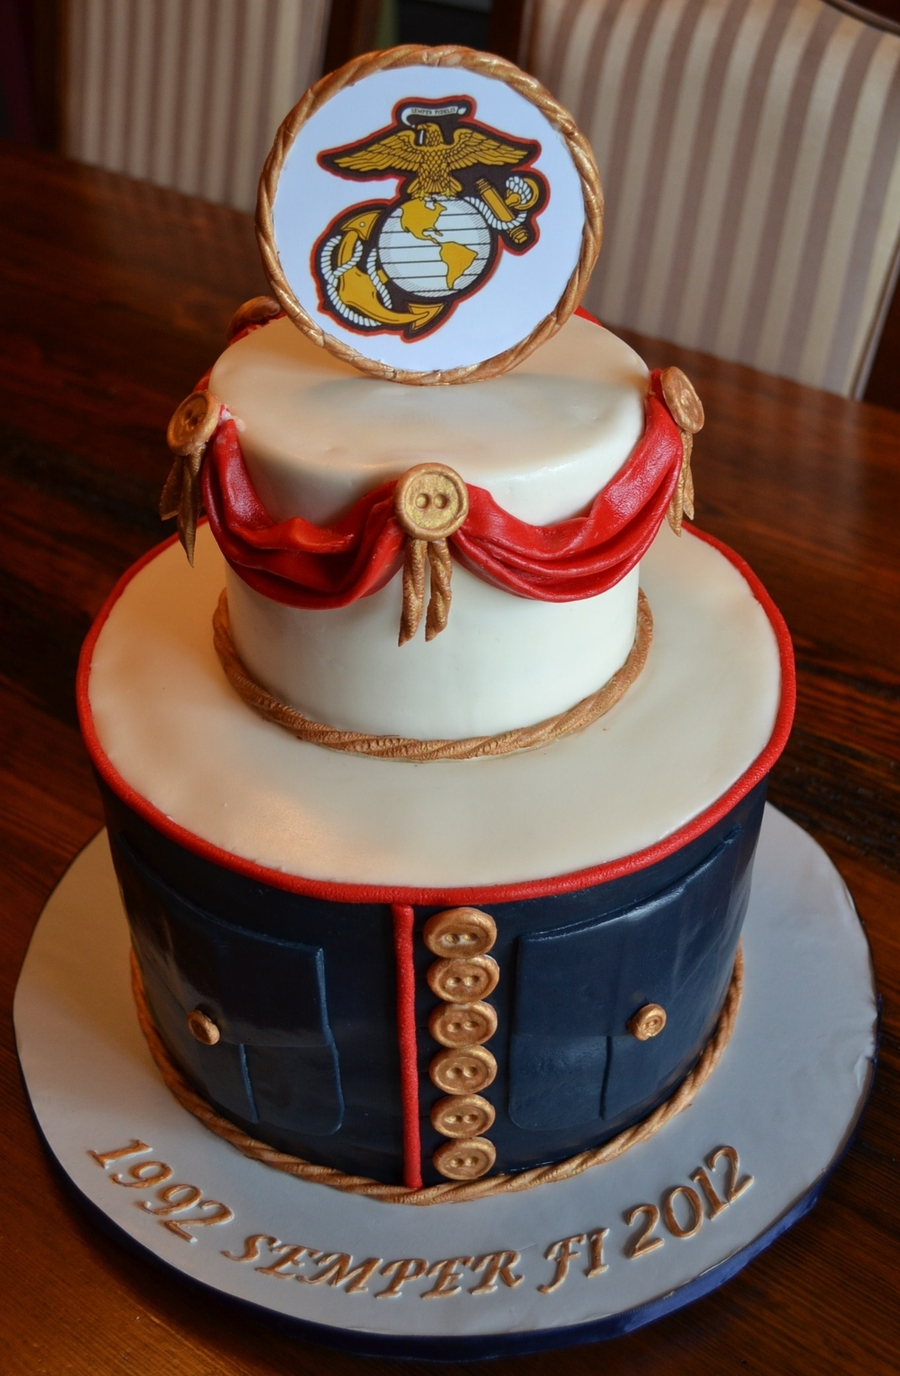 Usmc Retirement on Cake Central